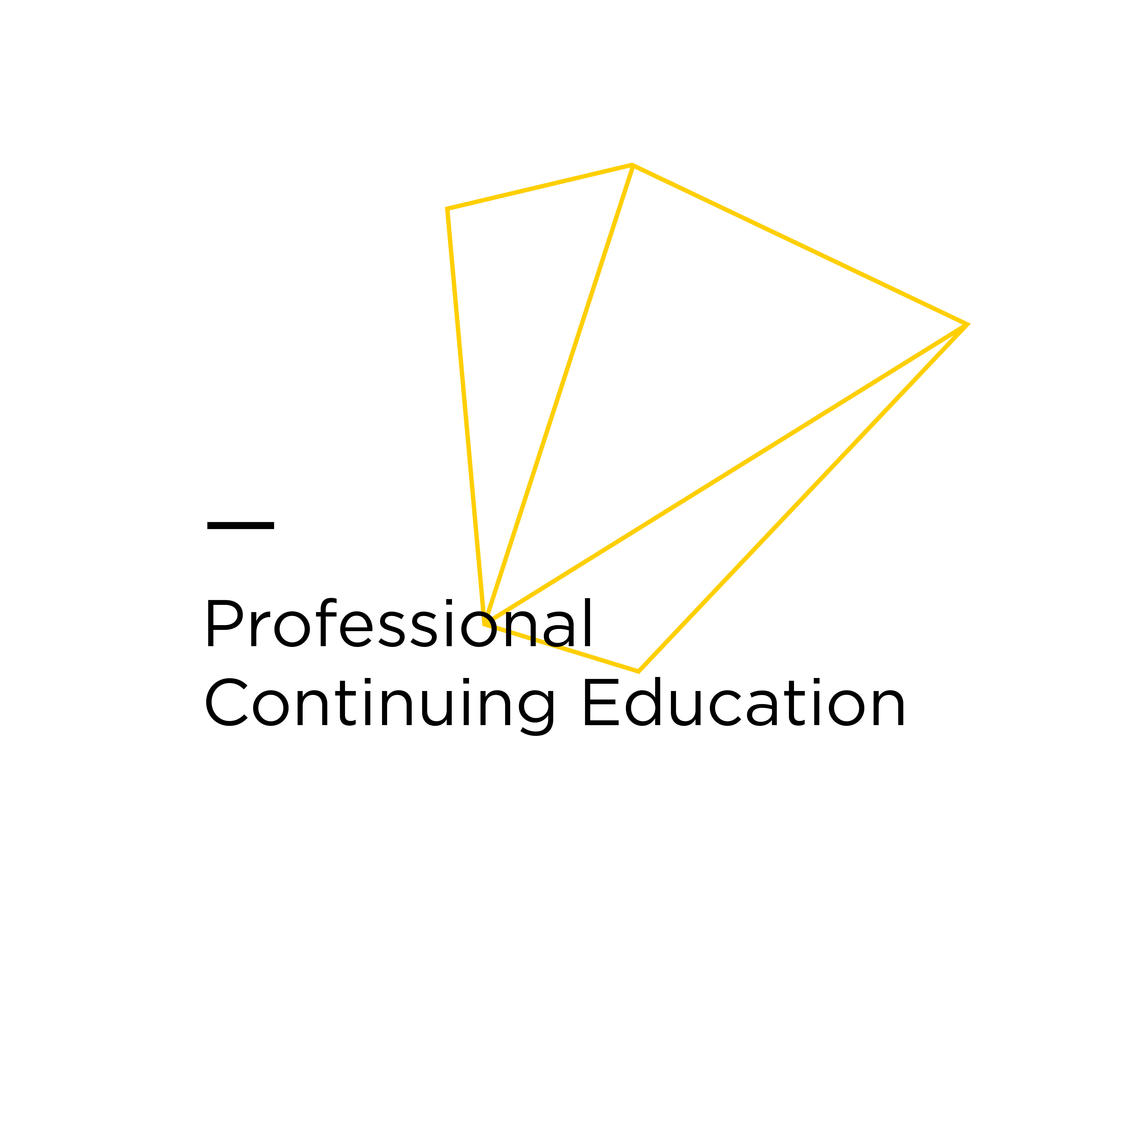 Professional continuing education